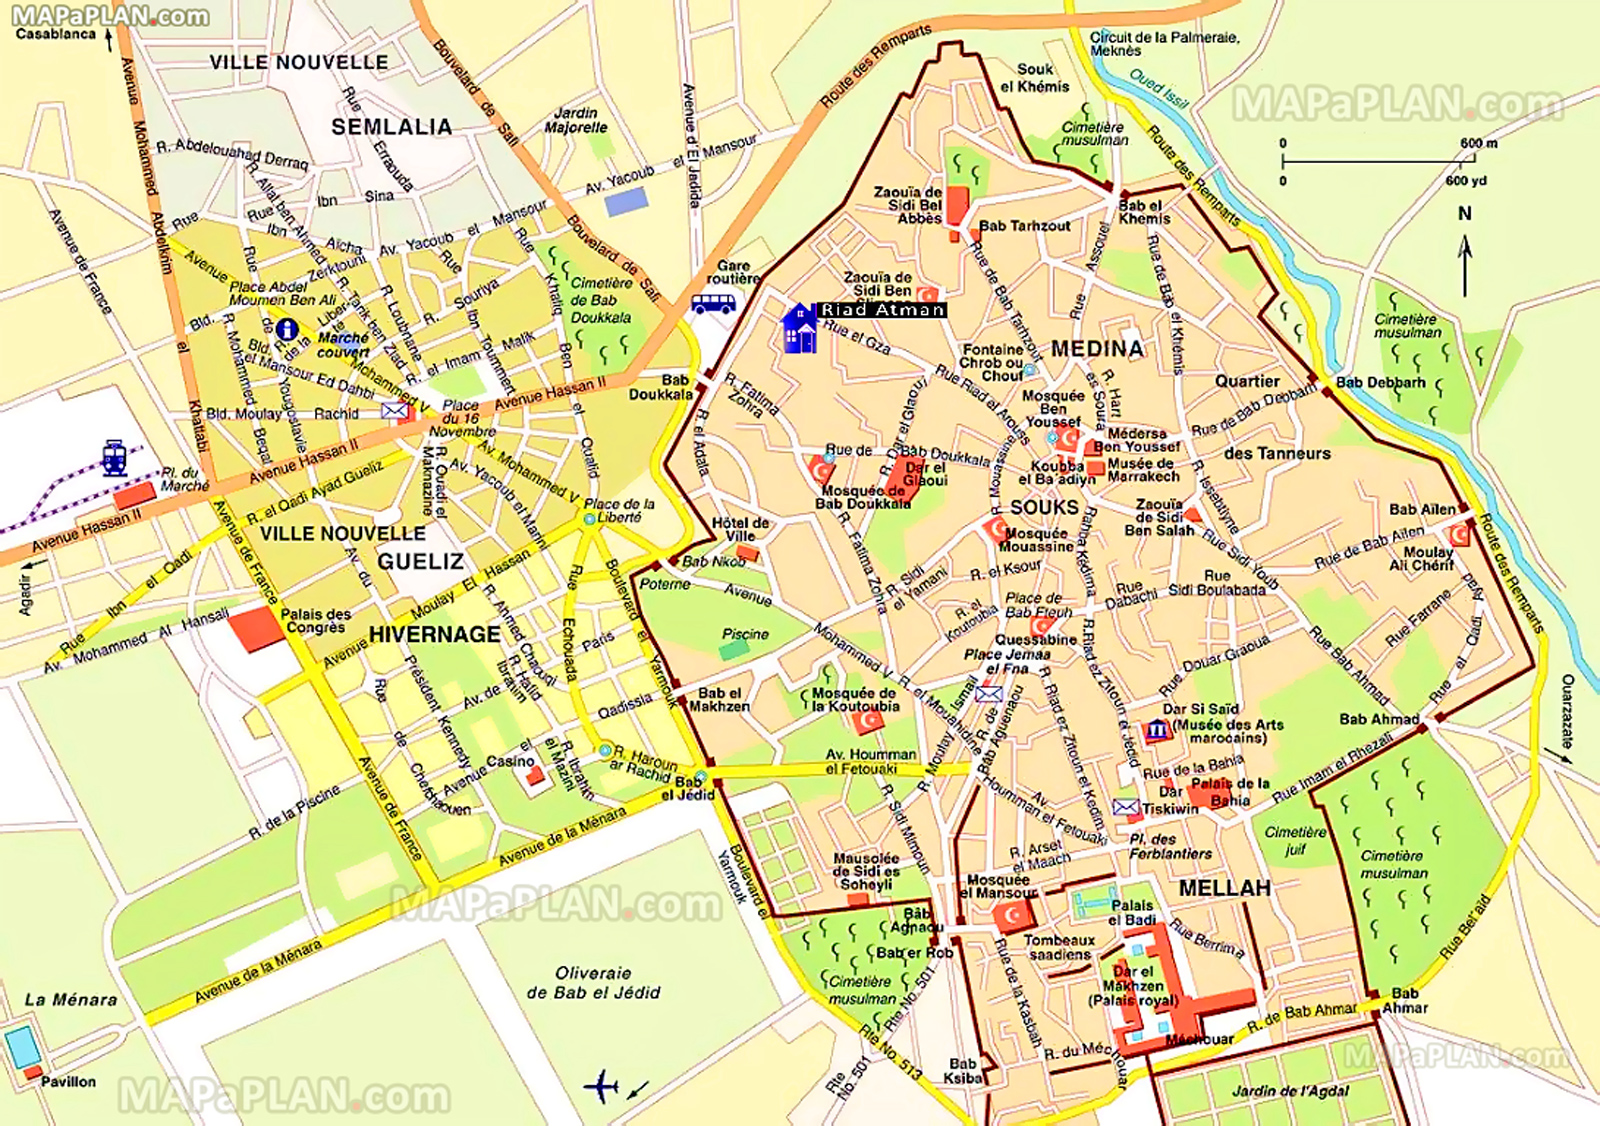 Map Of Marrakech Marrakech maps   Top tourist attractions   Free, printable city